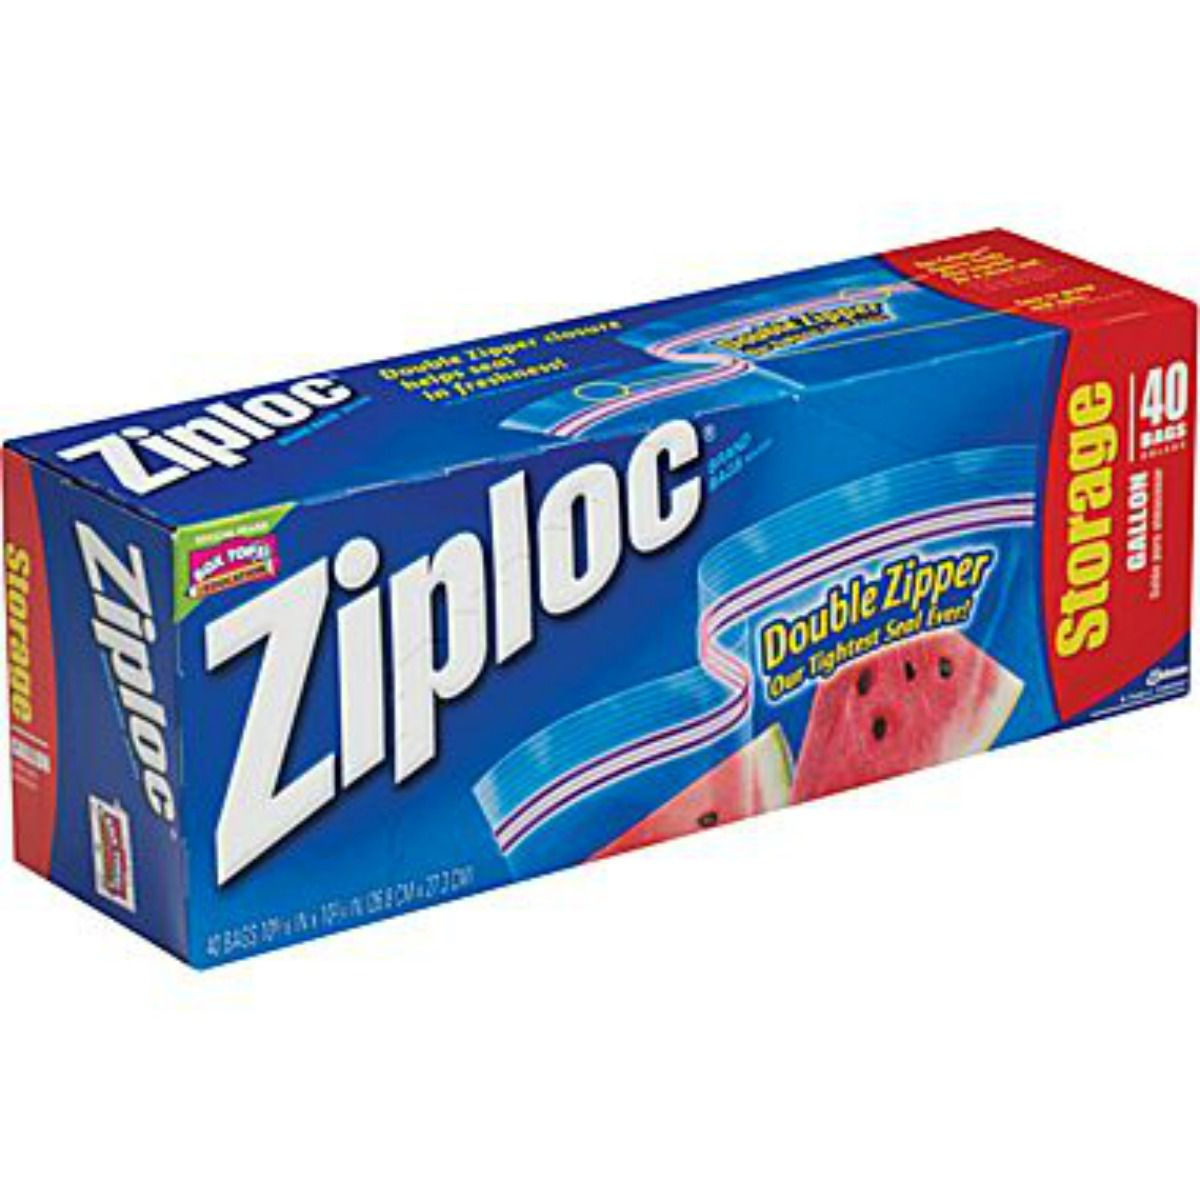 Have Ziploc bags in your carry-on